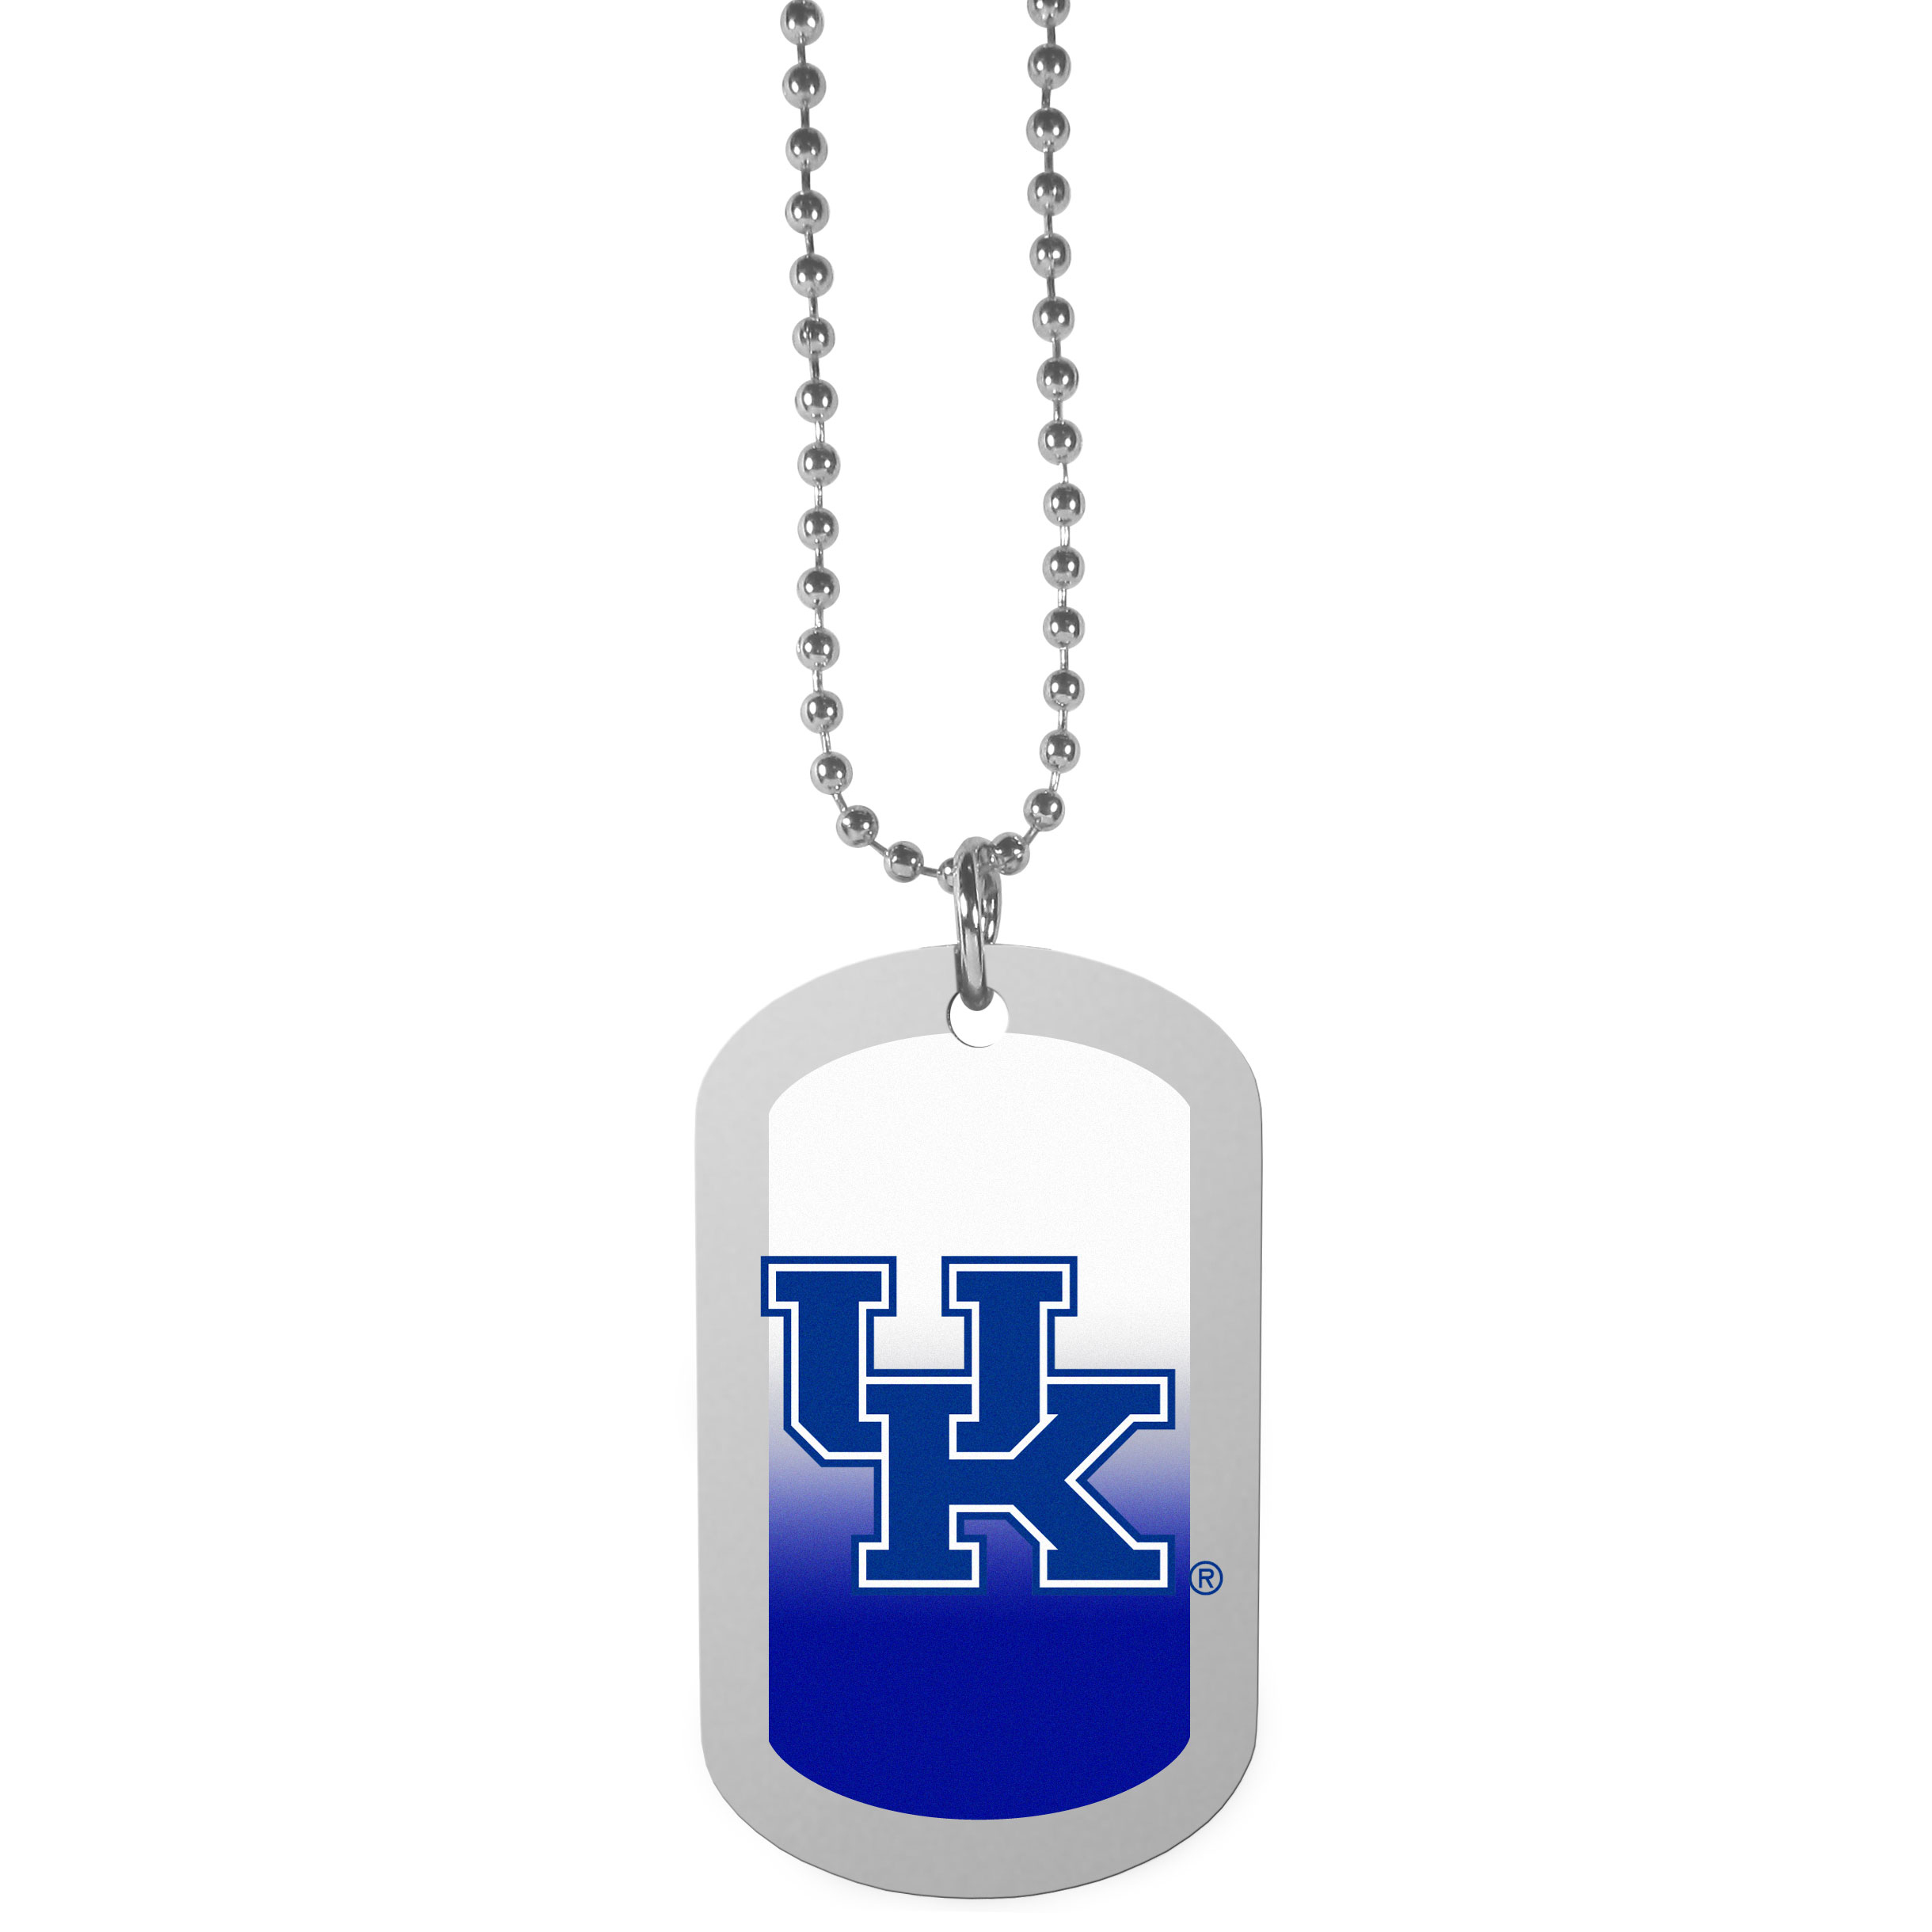 Kentucky Wildcats Team Tag Necklace - Dog tag necklaces are a fashion statement that is here to stay. The sporty version of the classic tag features a gradient print in team colors featuring a full color team logo over a high polish tag to create a bold and sporty look. The tag comes on a 26 inch ball chain with a ball and joint clasp. Any Kentucky Wildcats would be proud to wear this attractive fashion accessory.